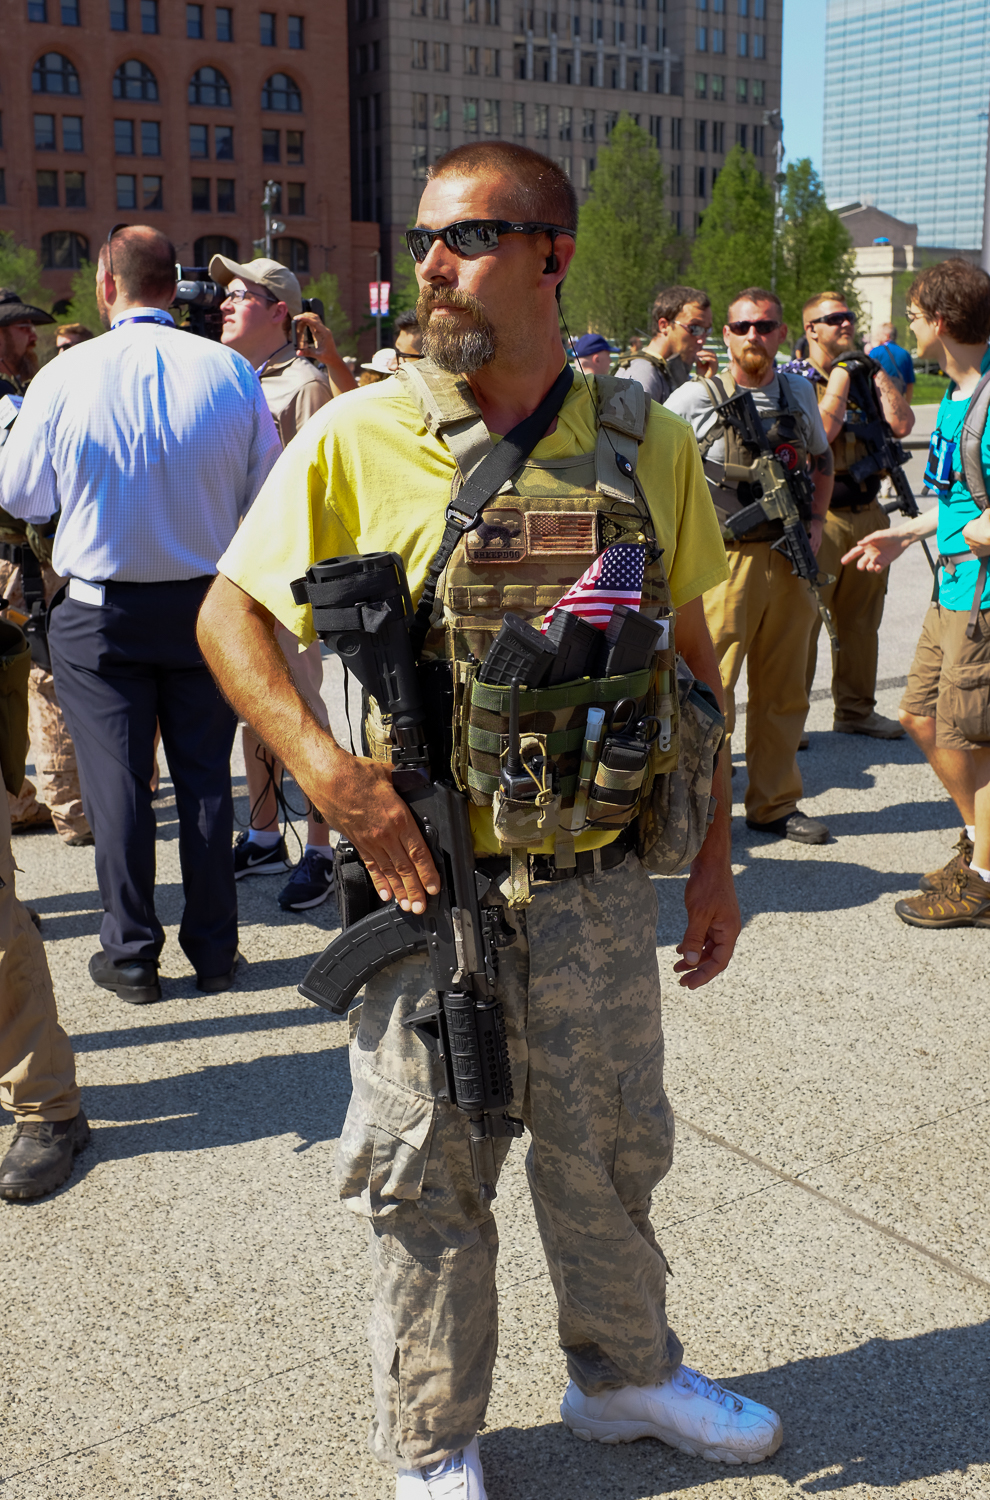 One of eight Ohio Minutemen who showed up at Public Square on Wednesday afternoon.